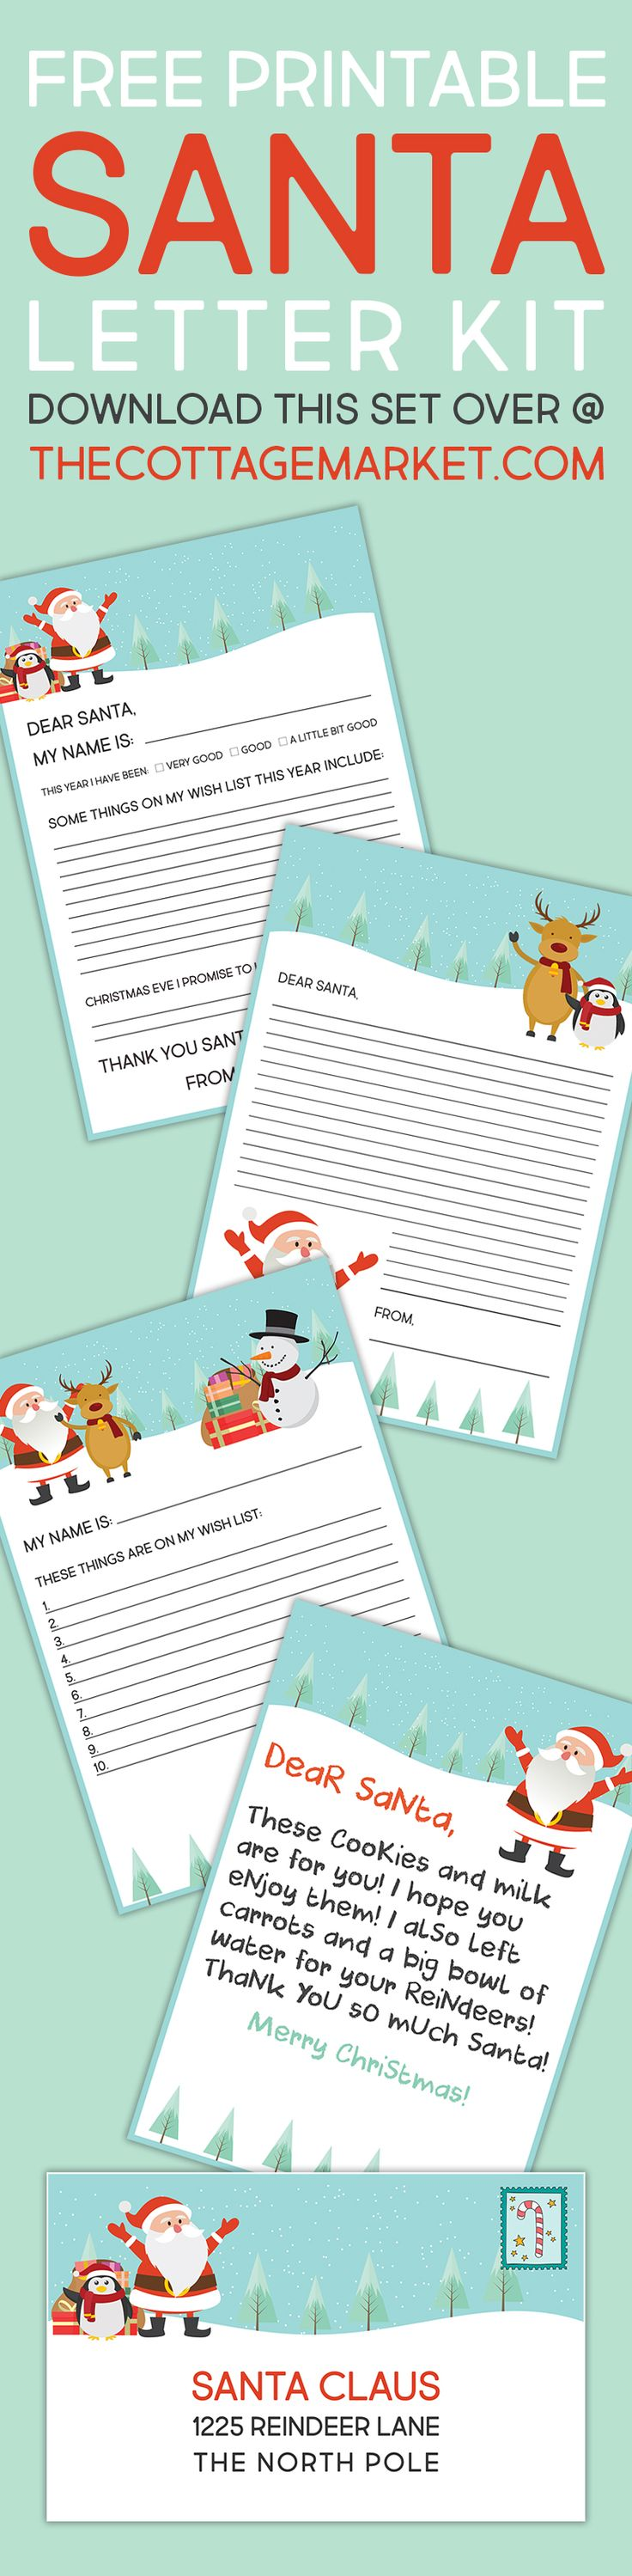 Best Christmas Printables Images On   Free Printable